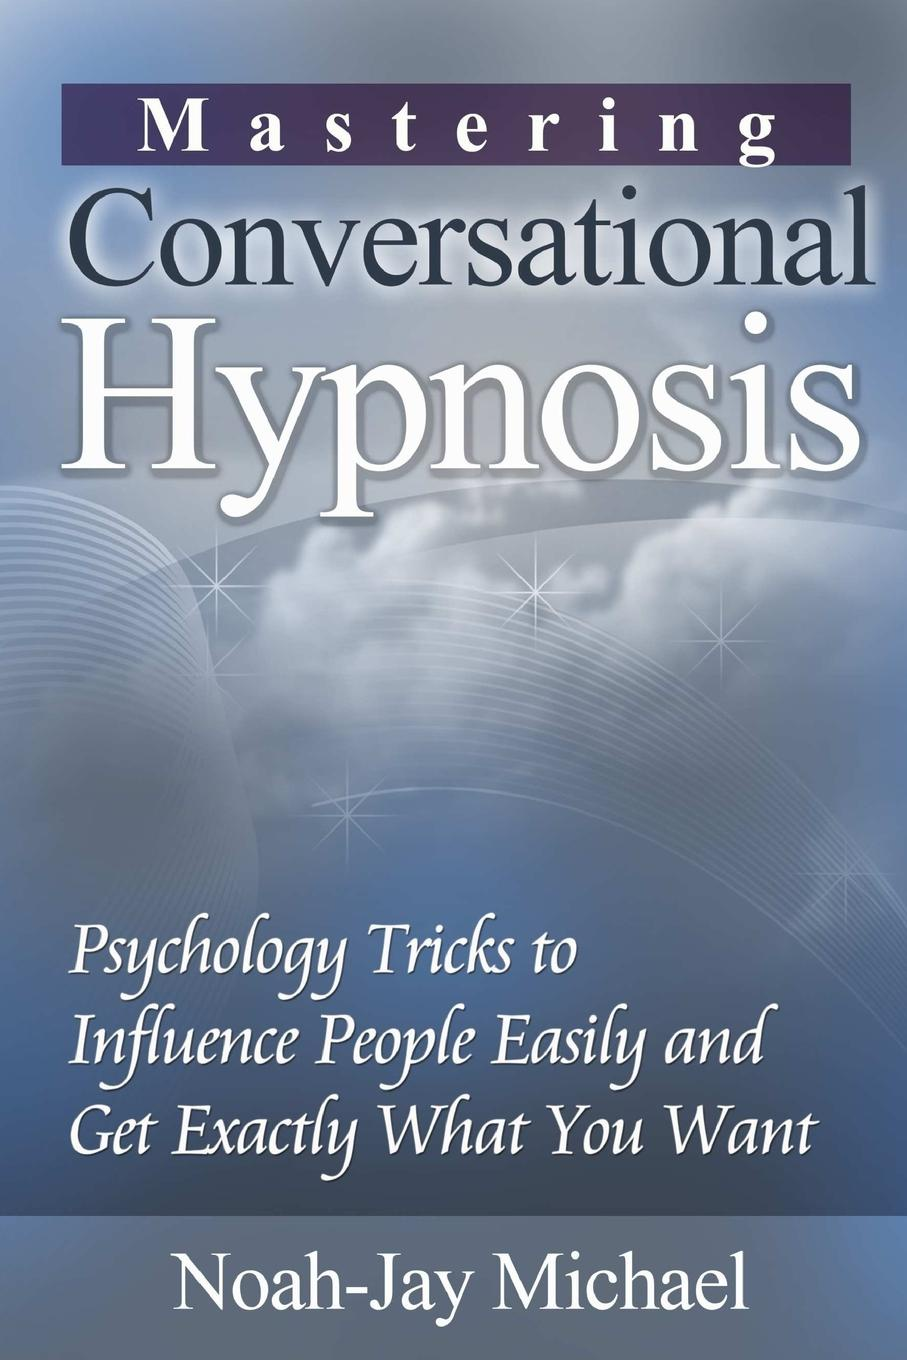 Фото - Noah-Jay Michael Mastering Conversational Hypnosis. Psychology Tricks to Influence People Easily and Get Exactly What You Want philip hesketh how to persuade and influence people completely revised and updated edition of life s a game so fix the odds powerful techniques to get your own way more often